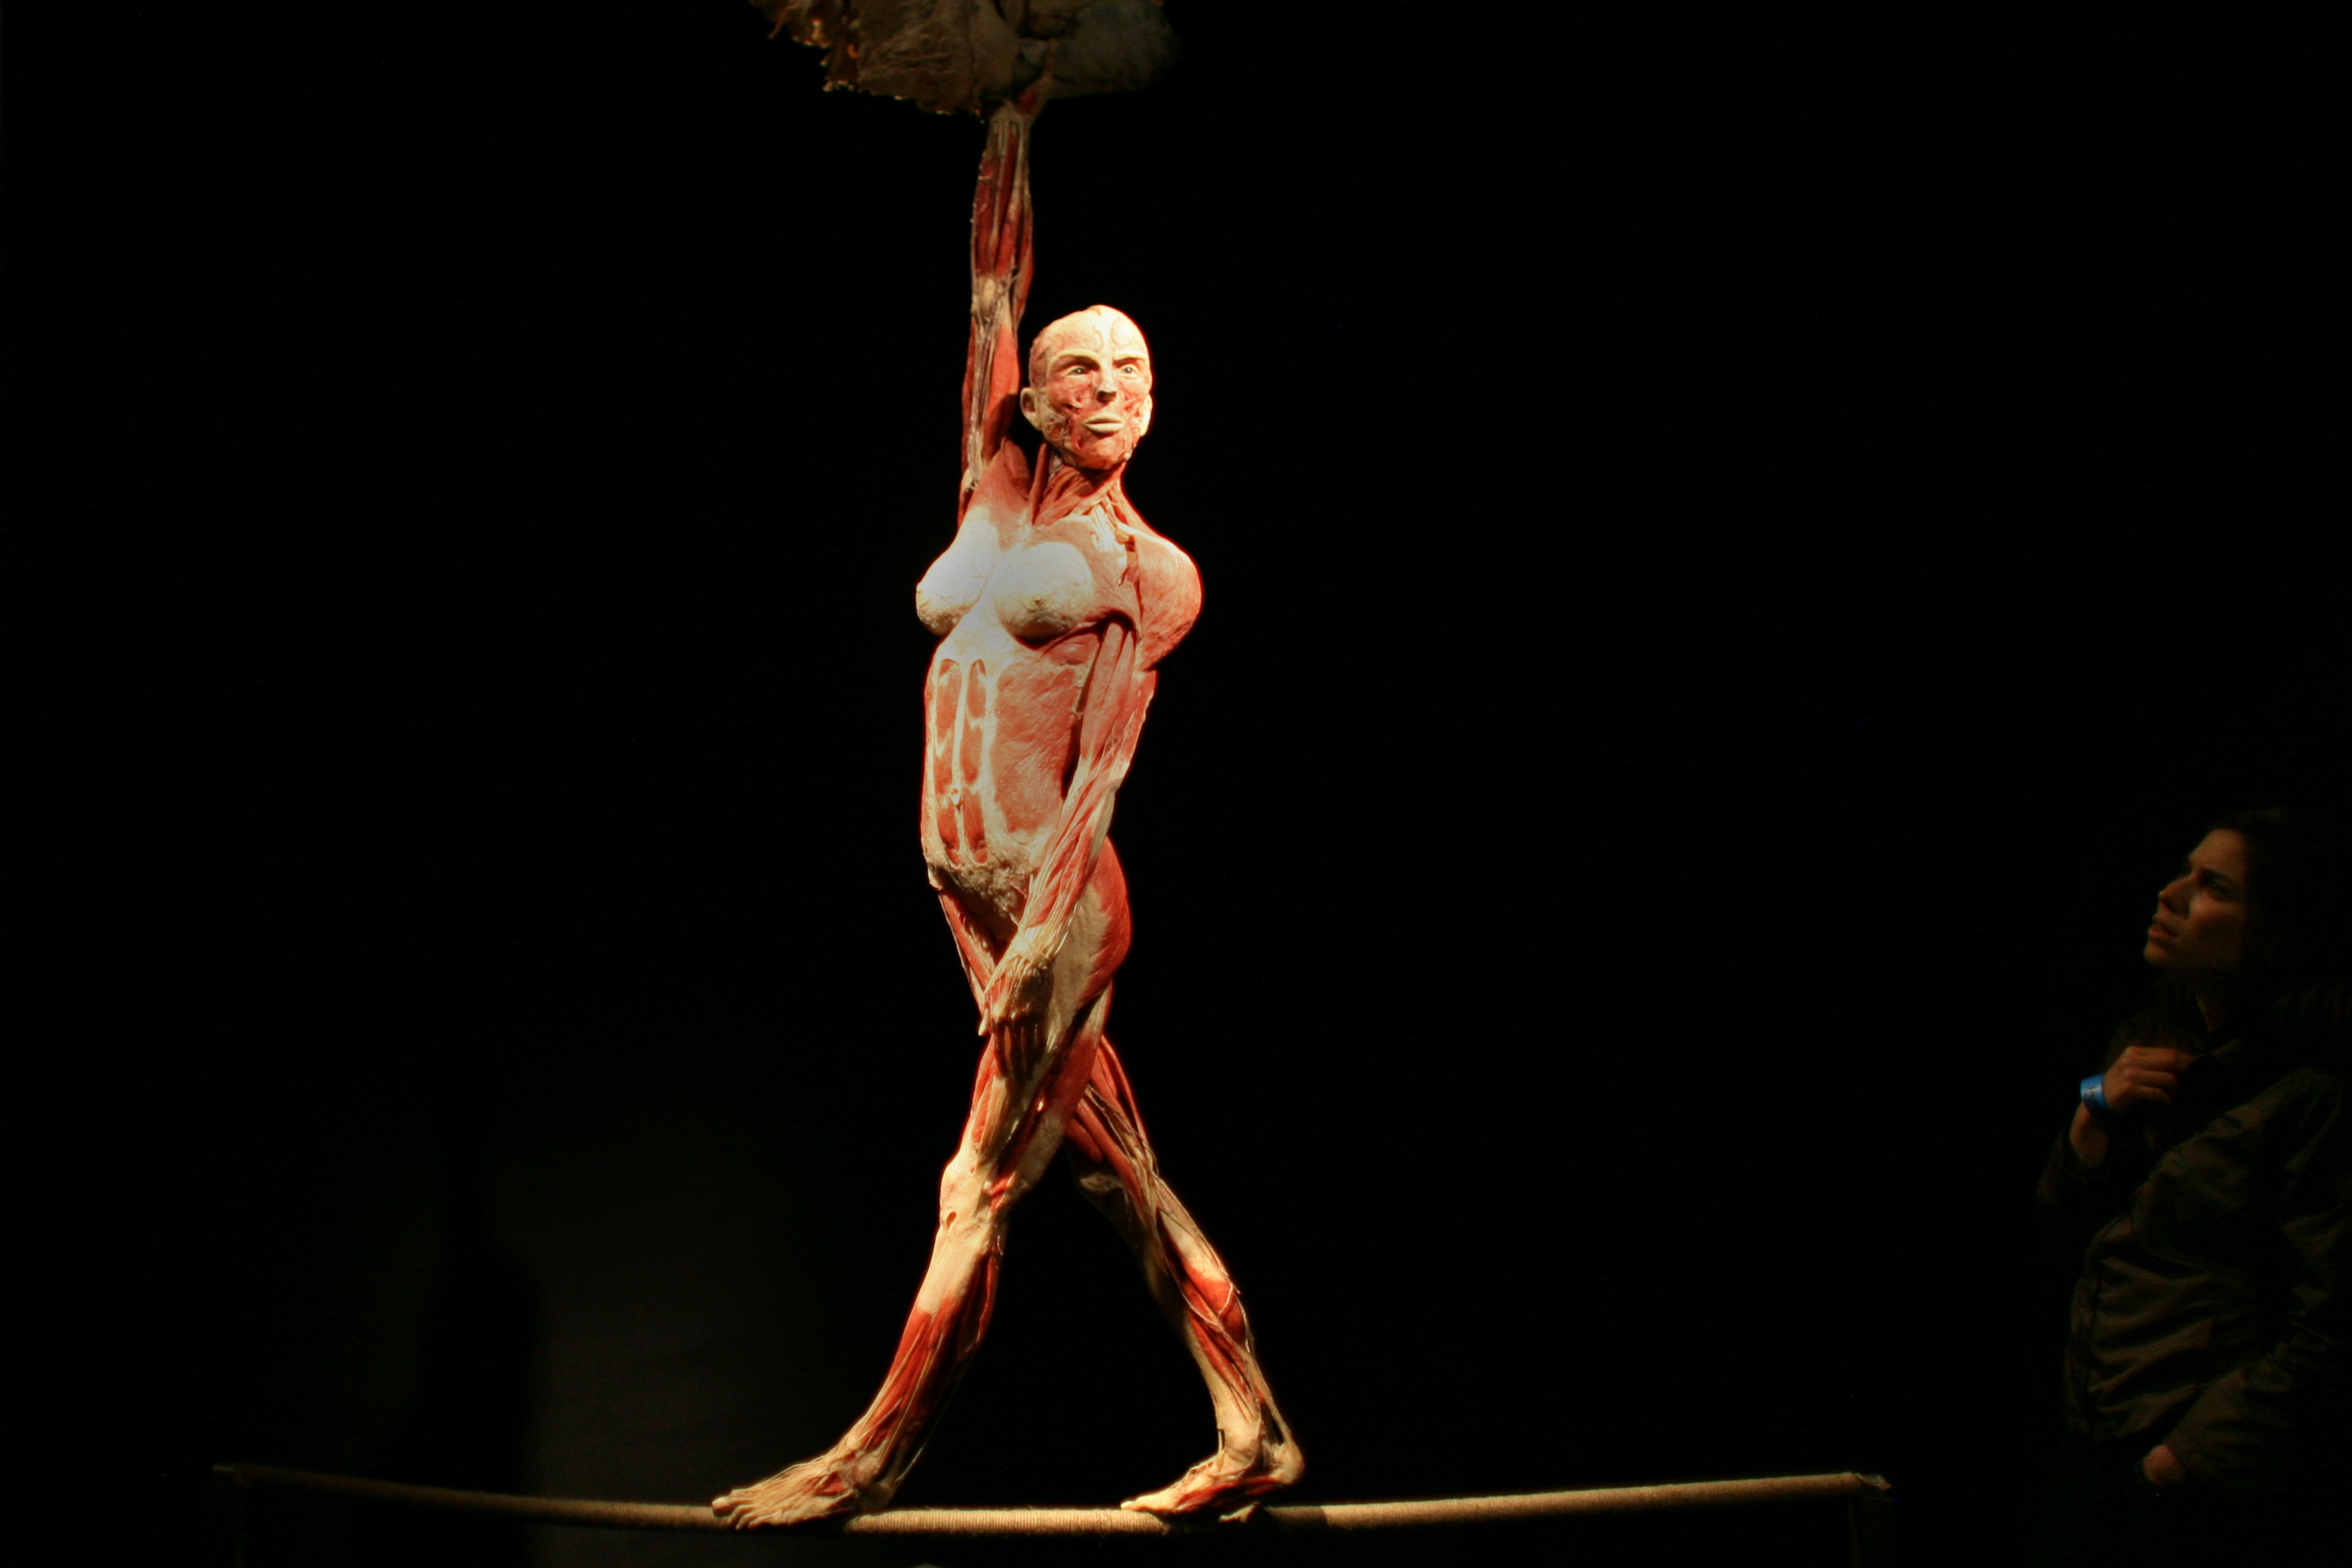 Uriel Sinai/Getty Images. A plastinated body is displayed at the 'Body Worlds' international exhibit April 6, 2009 in the northern Israeli city of Haifa .